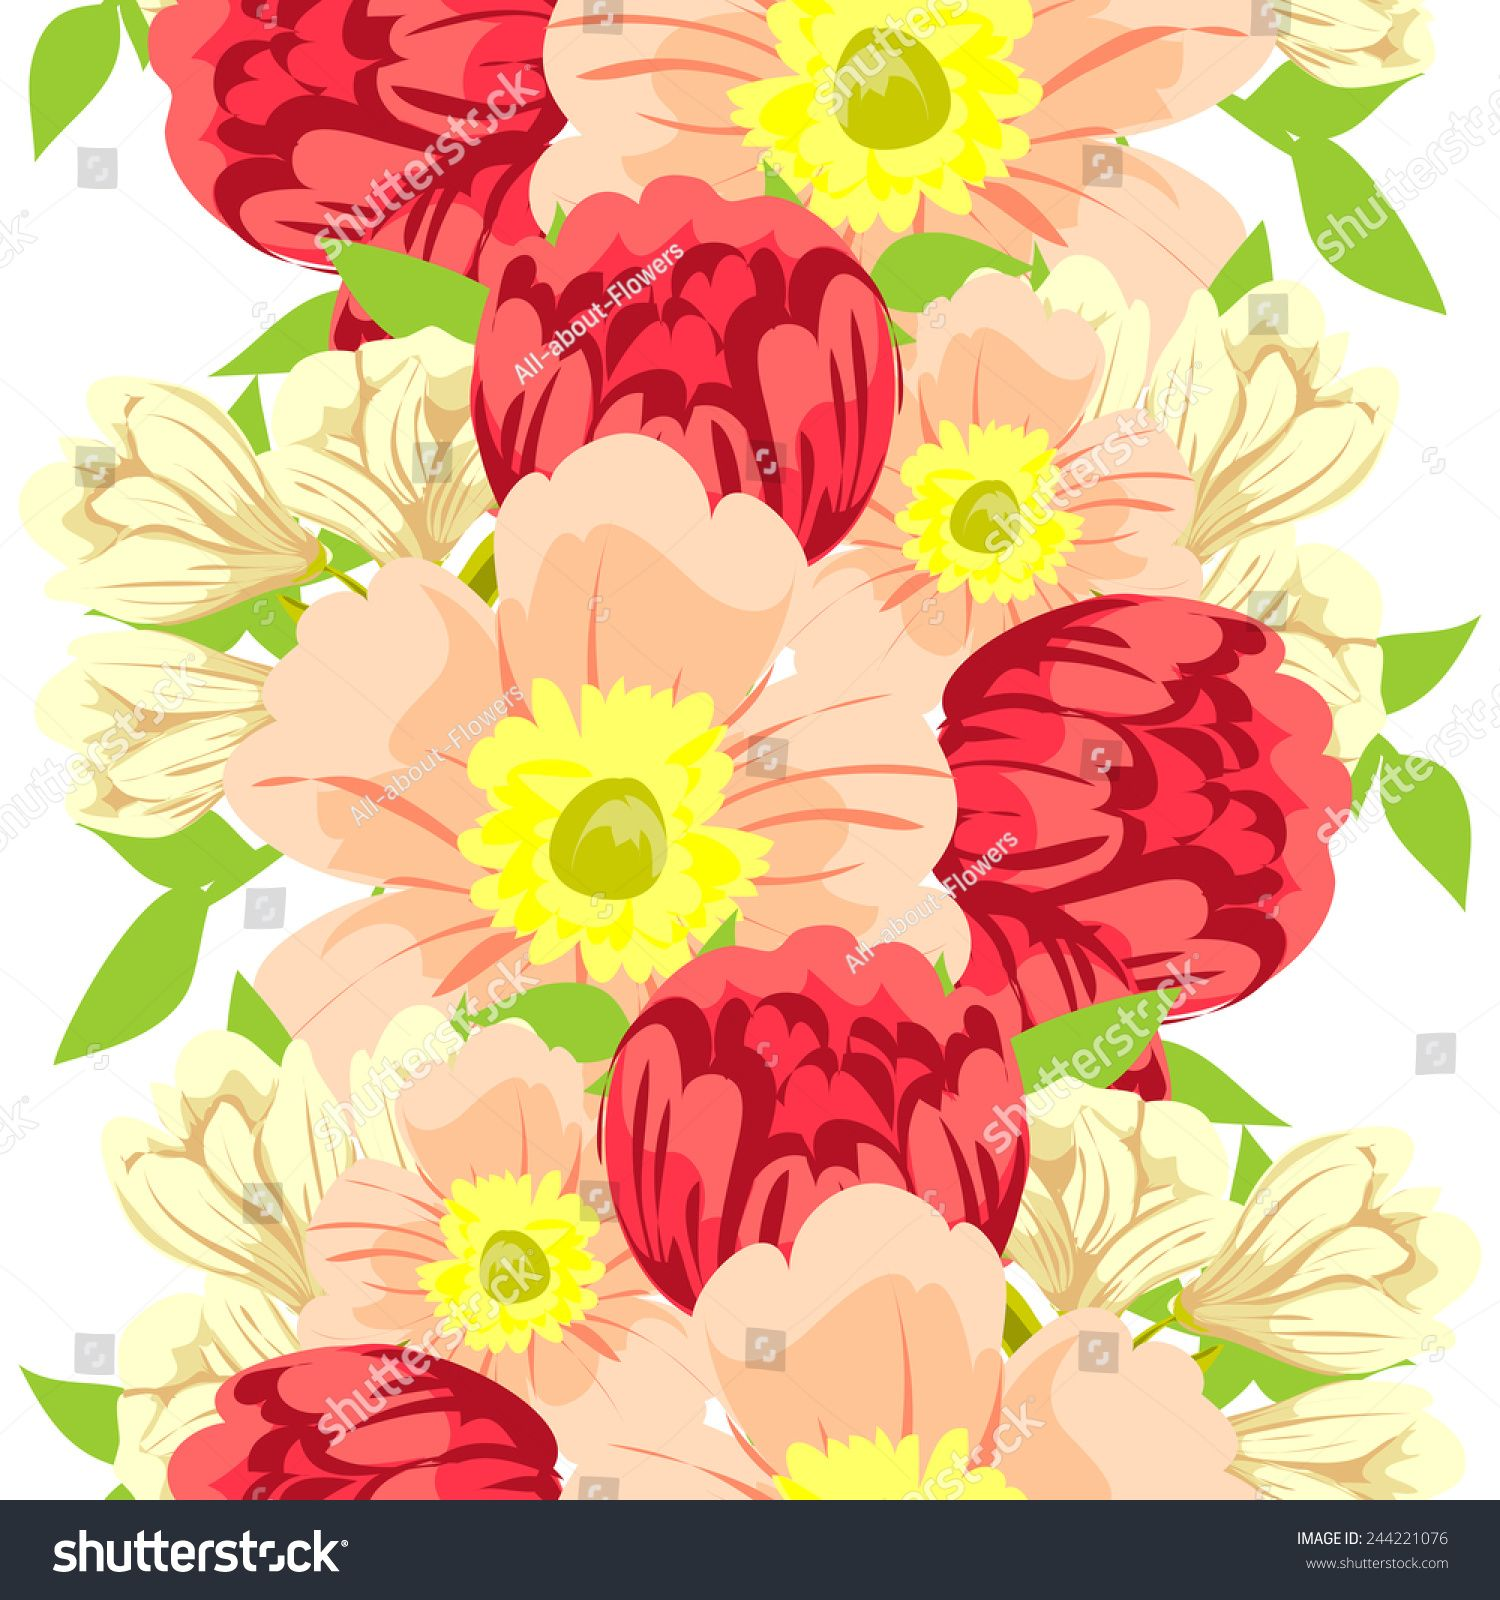 Abstract Elegance Seamless pattern with floral background #Sponsored , #ad, #Seamless#Elegance#Abstract#background